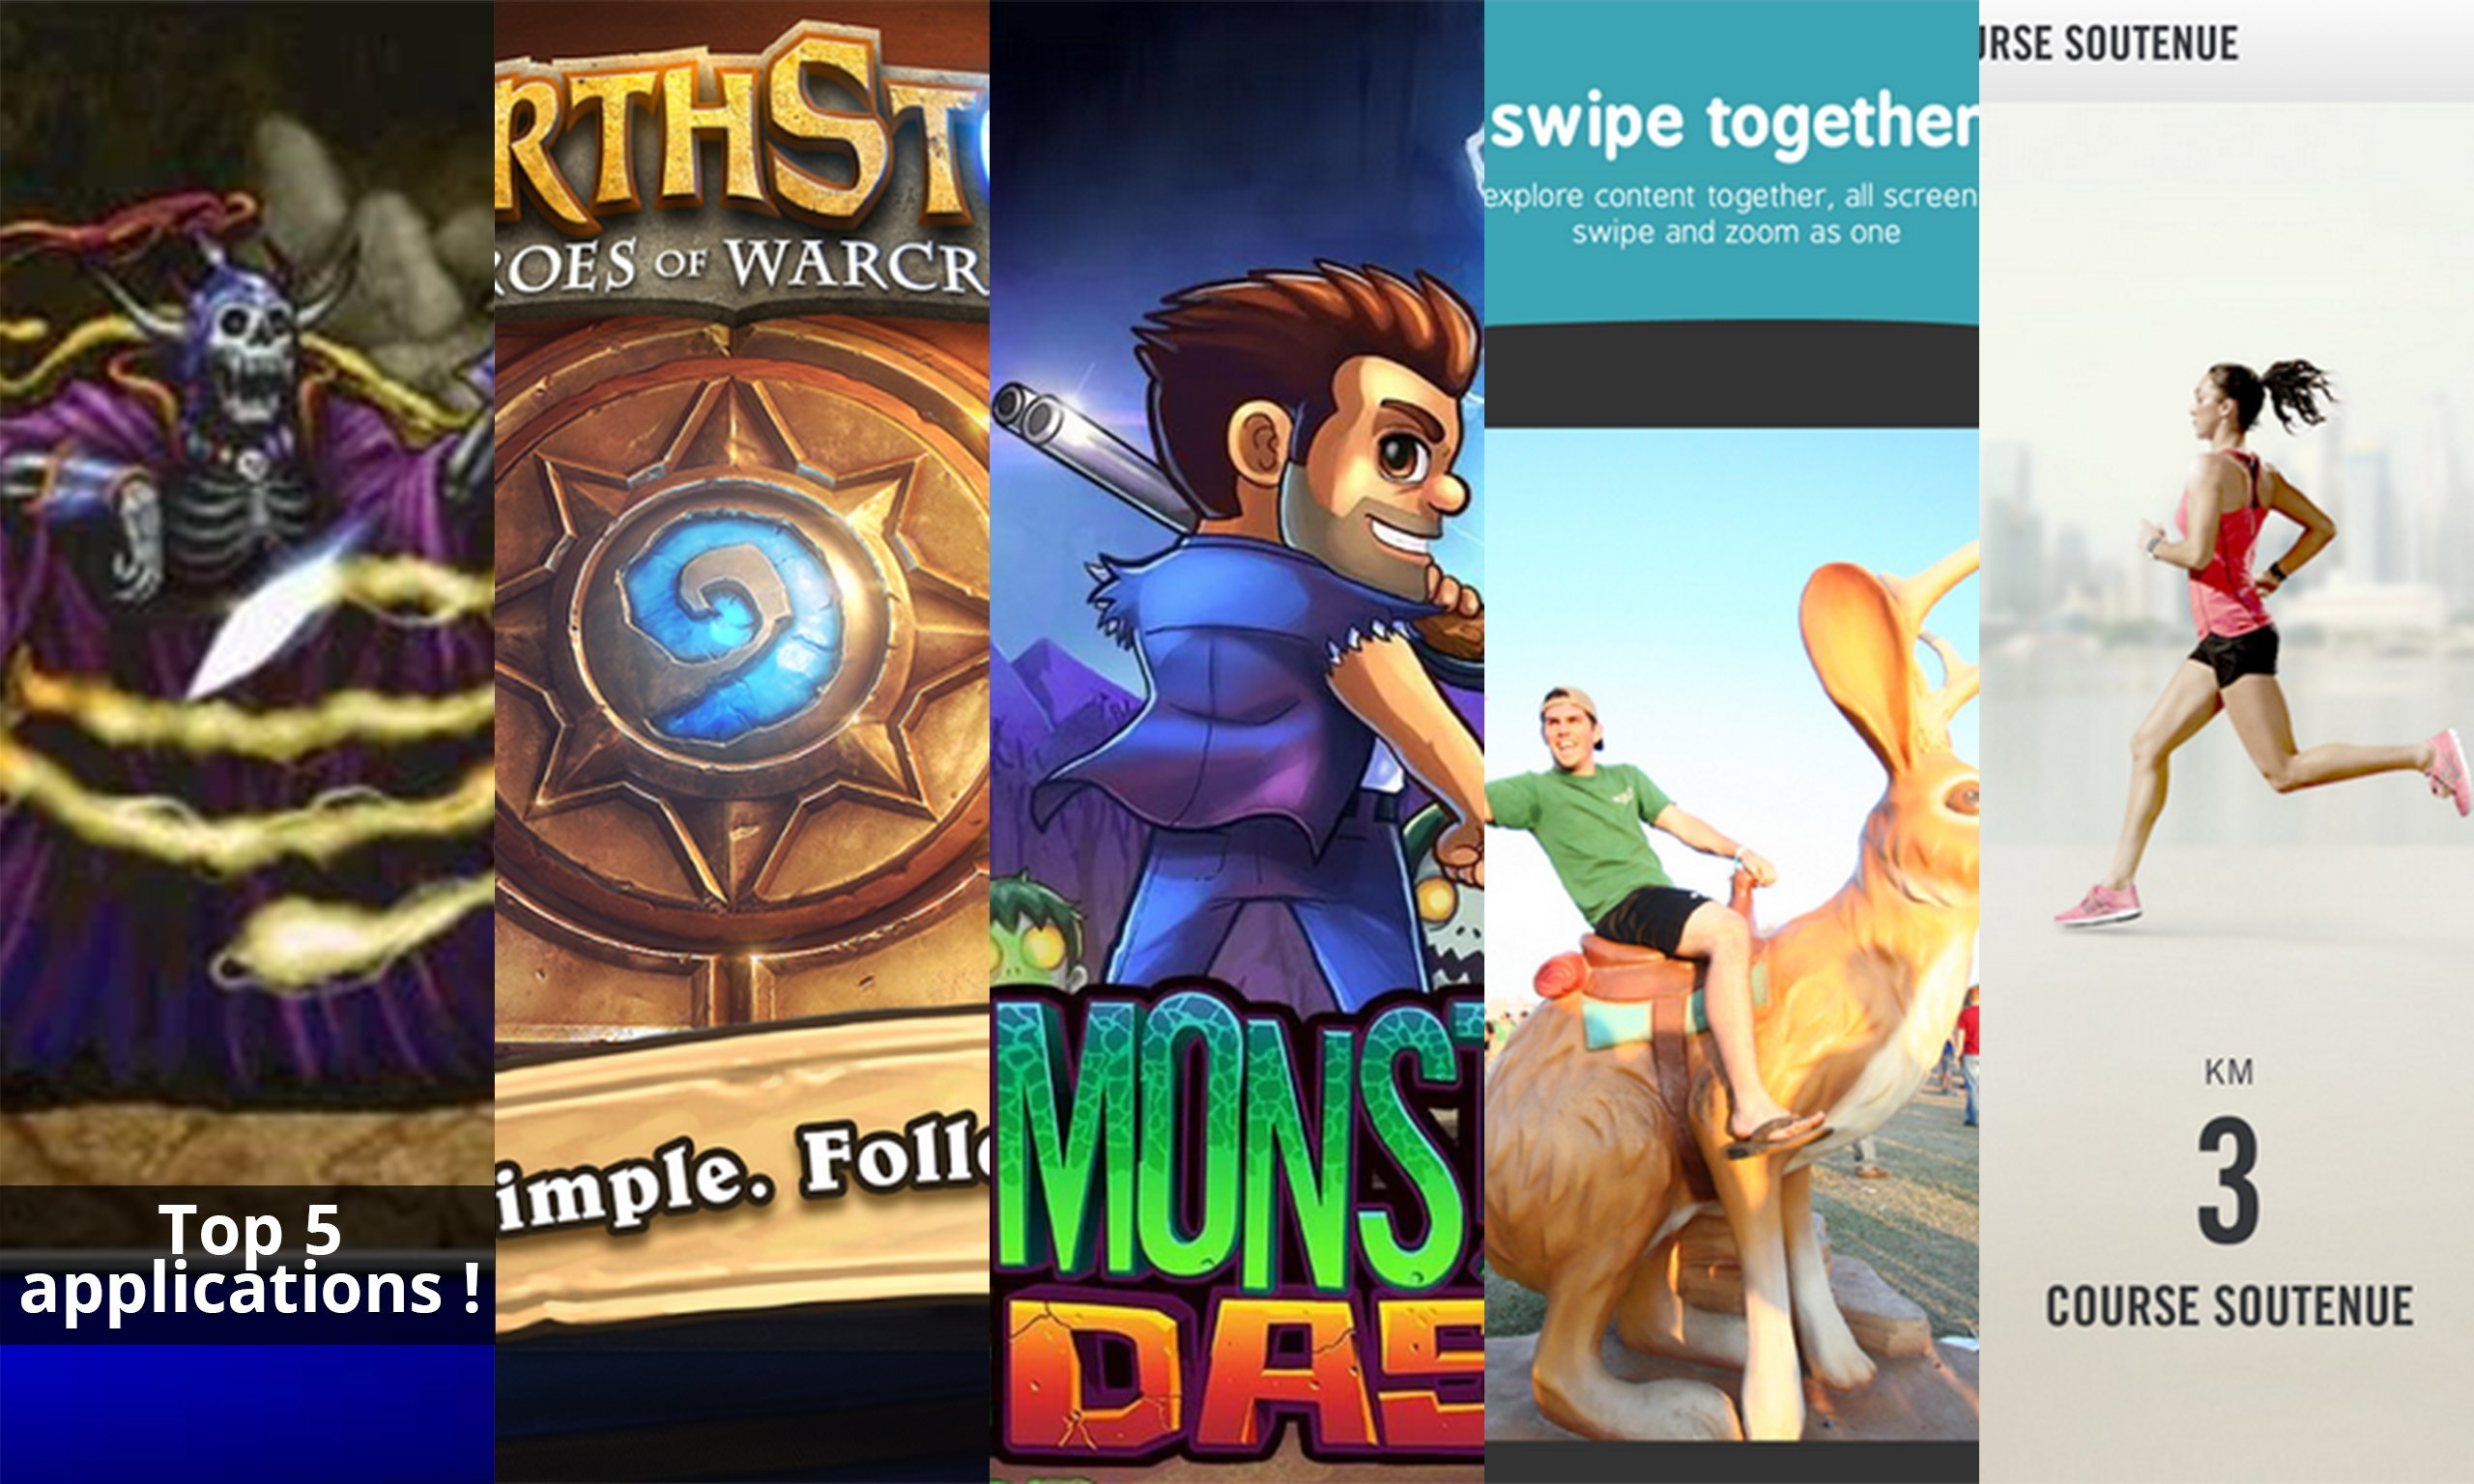 Les apps de la semaine : Final Fantasy, Hearthstone Heroes of Warcraft, Monster Dash, Microsoft Xim et Nike+ Training Club